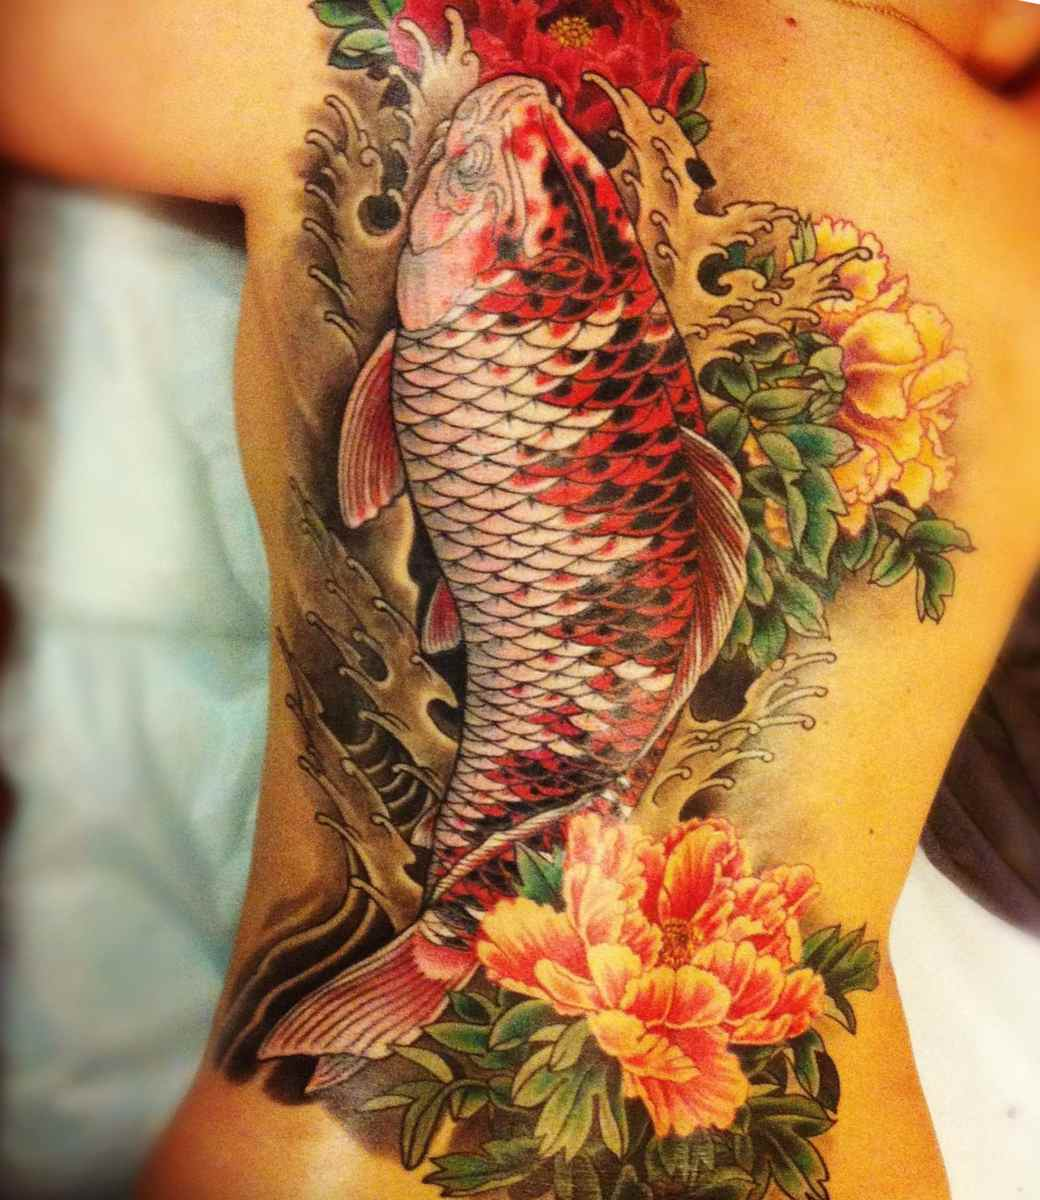 Koi Tattoo Designs Tattoo Designs Ideas For Man And Woman